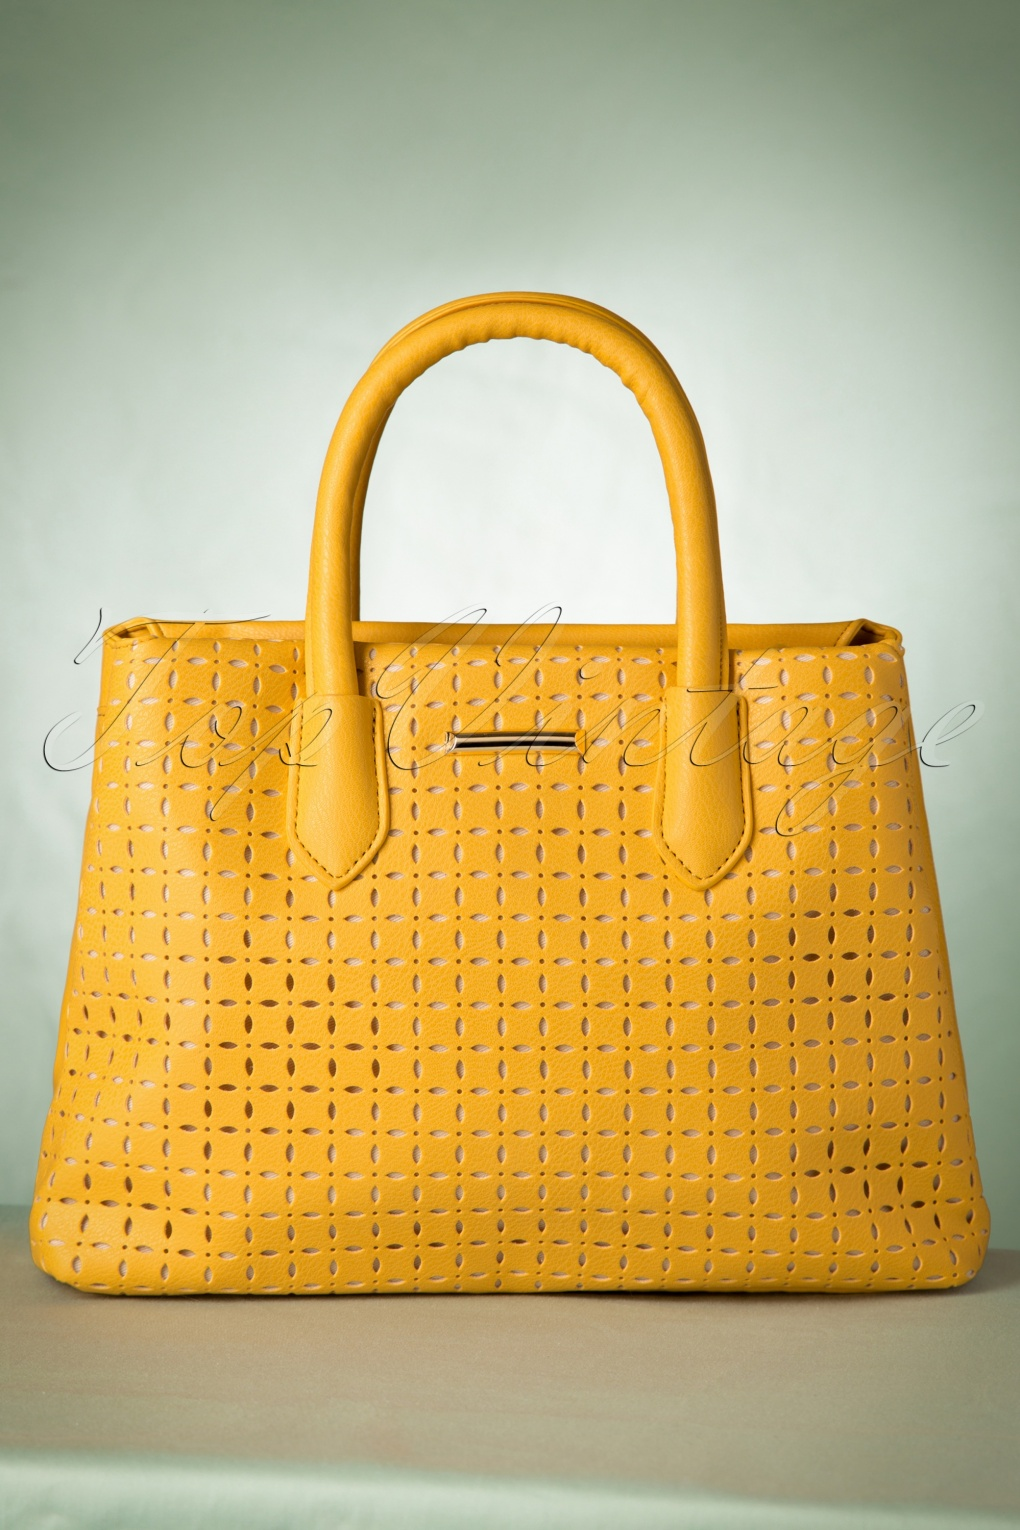 Vintage & Retro Handbags, Purses, Wallets, Bags 60s Sweet Like Sugar Handbag in Yellow £30.52 AT vintagedancer.com